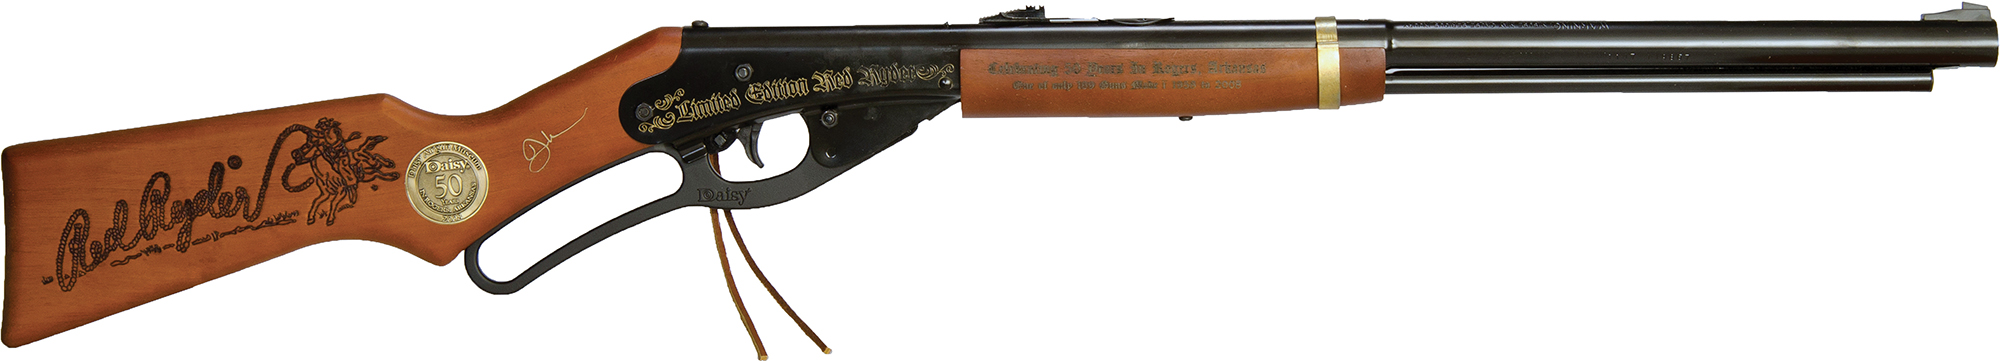 A limited edition engraved Red Ryder BB gun commemorating 50 years in Rogers, Arkansas.